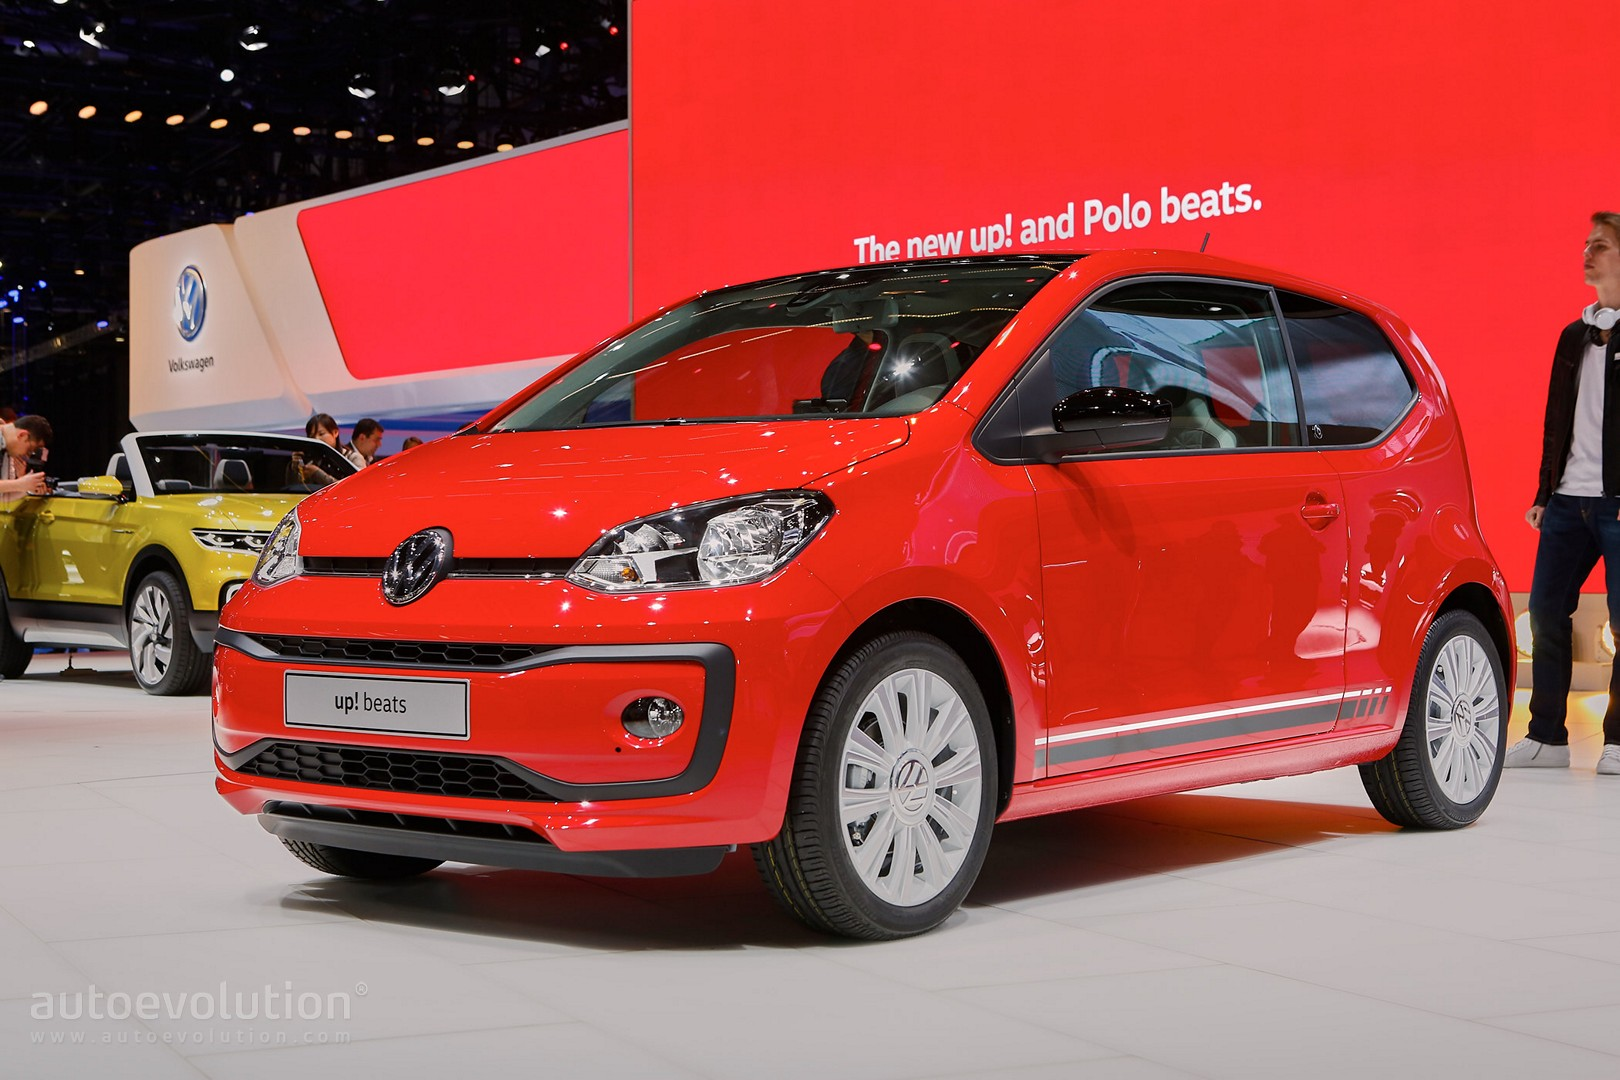 2016 volkswagen up beats and polo beats debut in geneva autoevolution. Black Bedroom Furniture Sets. Home Design Ideas